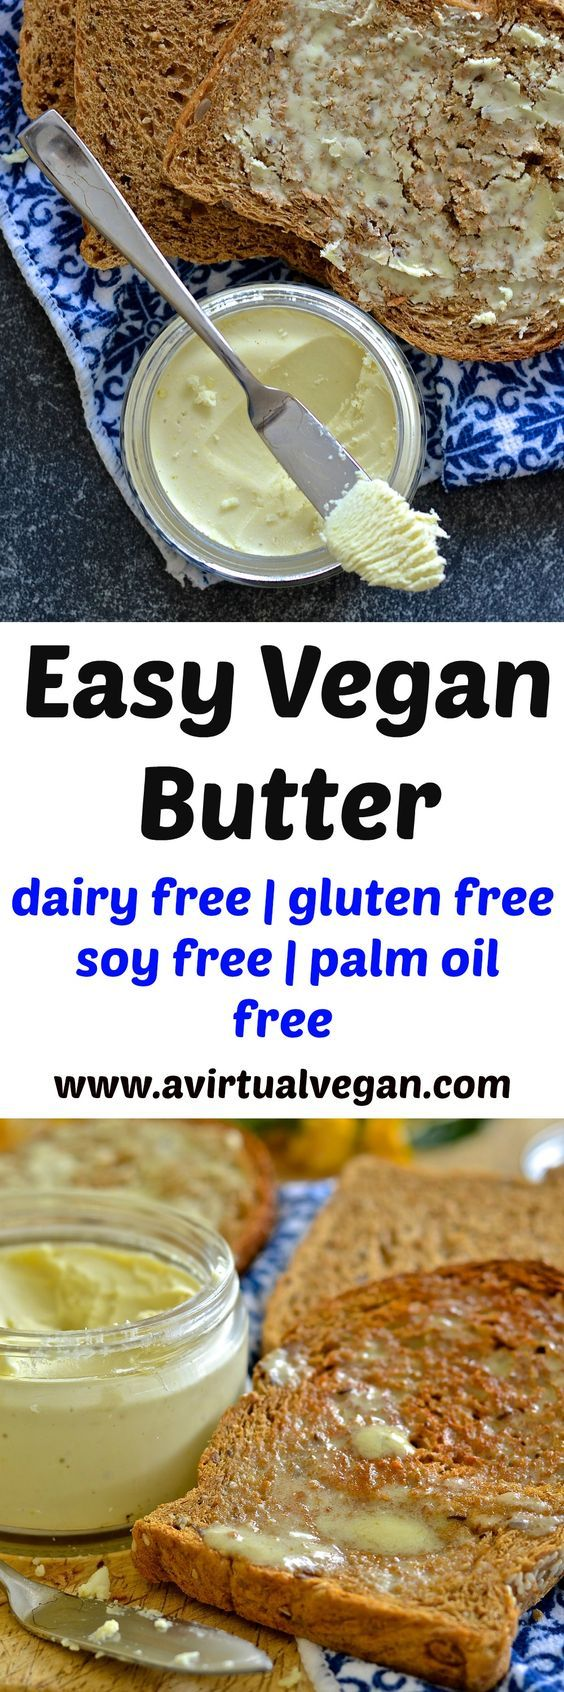 If you love butter but hate the ingredients in store bought dairy free versions then this vegan butter recipe is the answer to your prayers. It is dreamily smooth, rich & creamy & can be whipped up in minutes. It is also palm oil & emulsifier free & can be used in any way you would use real butter! via @avirtualvegan